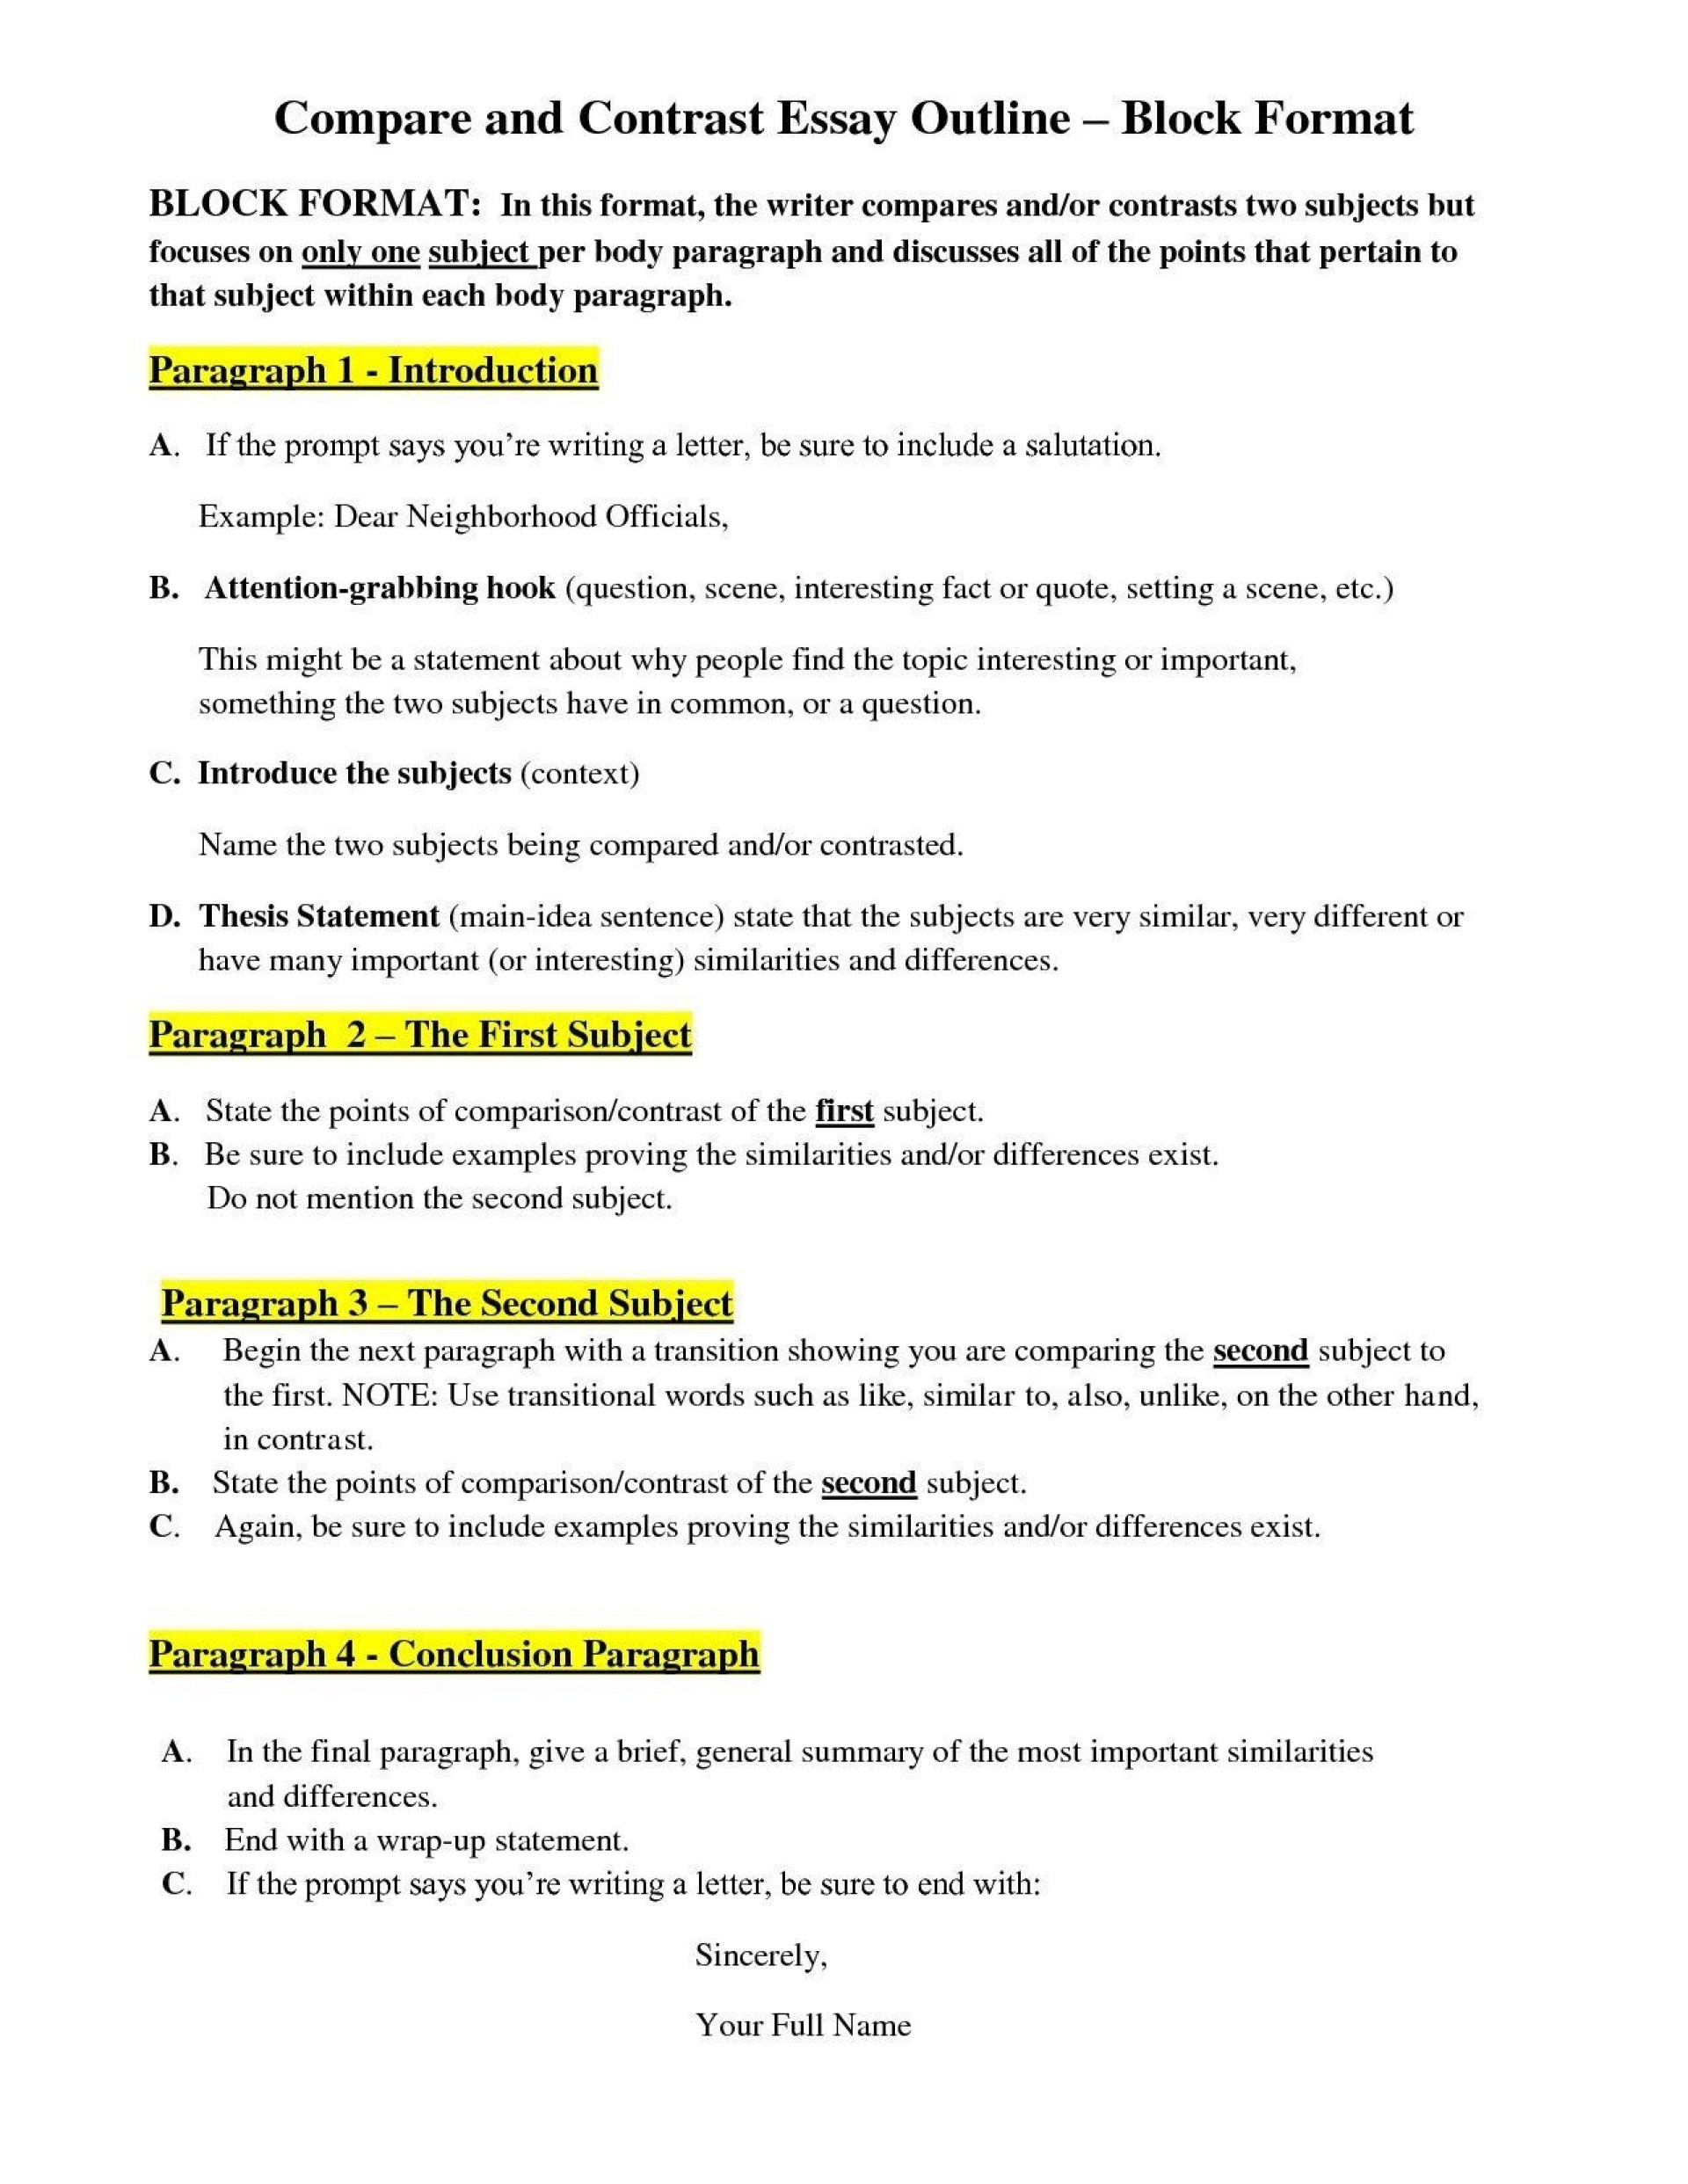 014 Essay Examplempare Andntrastmparison Best Examples Of Scenario In 6th Grade An Goo 3rd Food 5th Middle School Block Format Pdf High 4th Vs Striking Compare And Contrast Example Topics 8 8th College Outline 1920